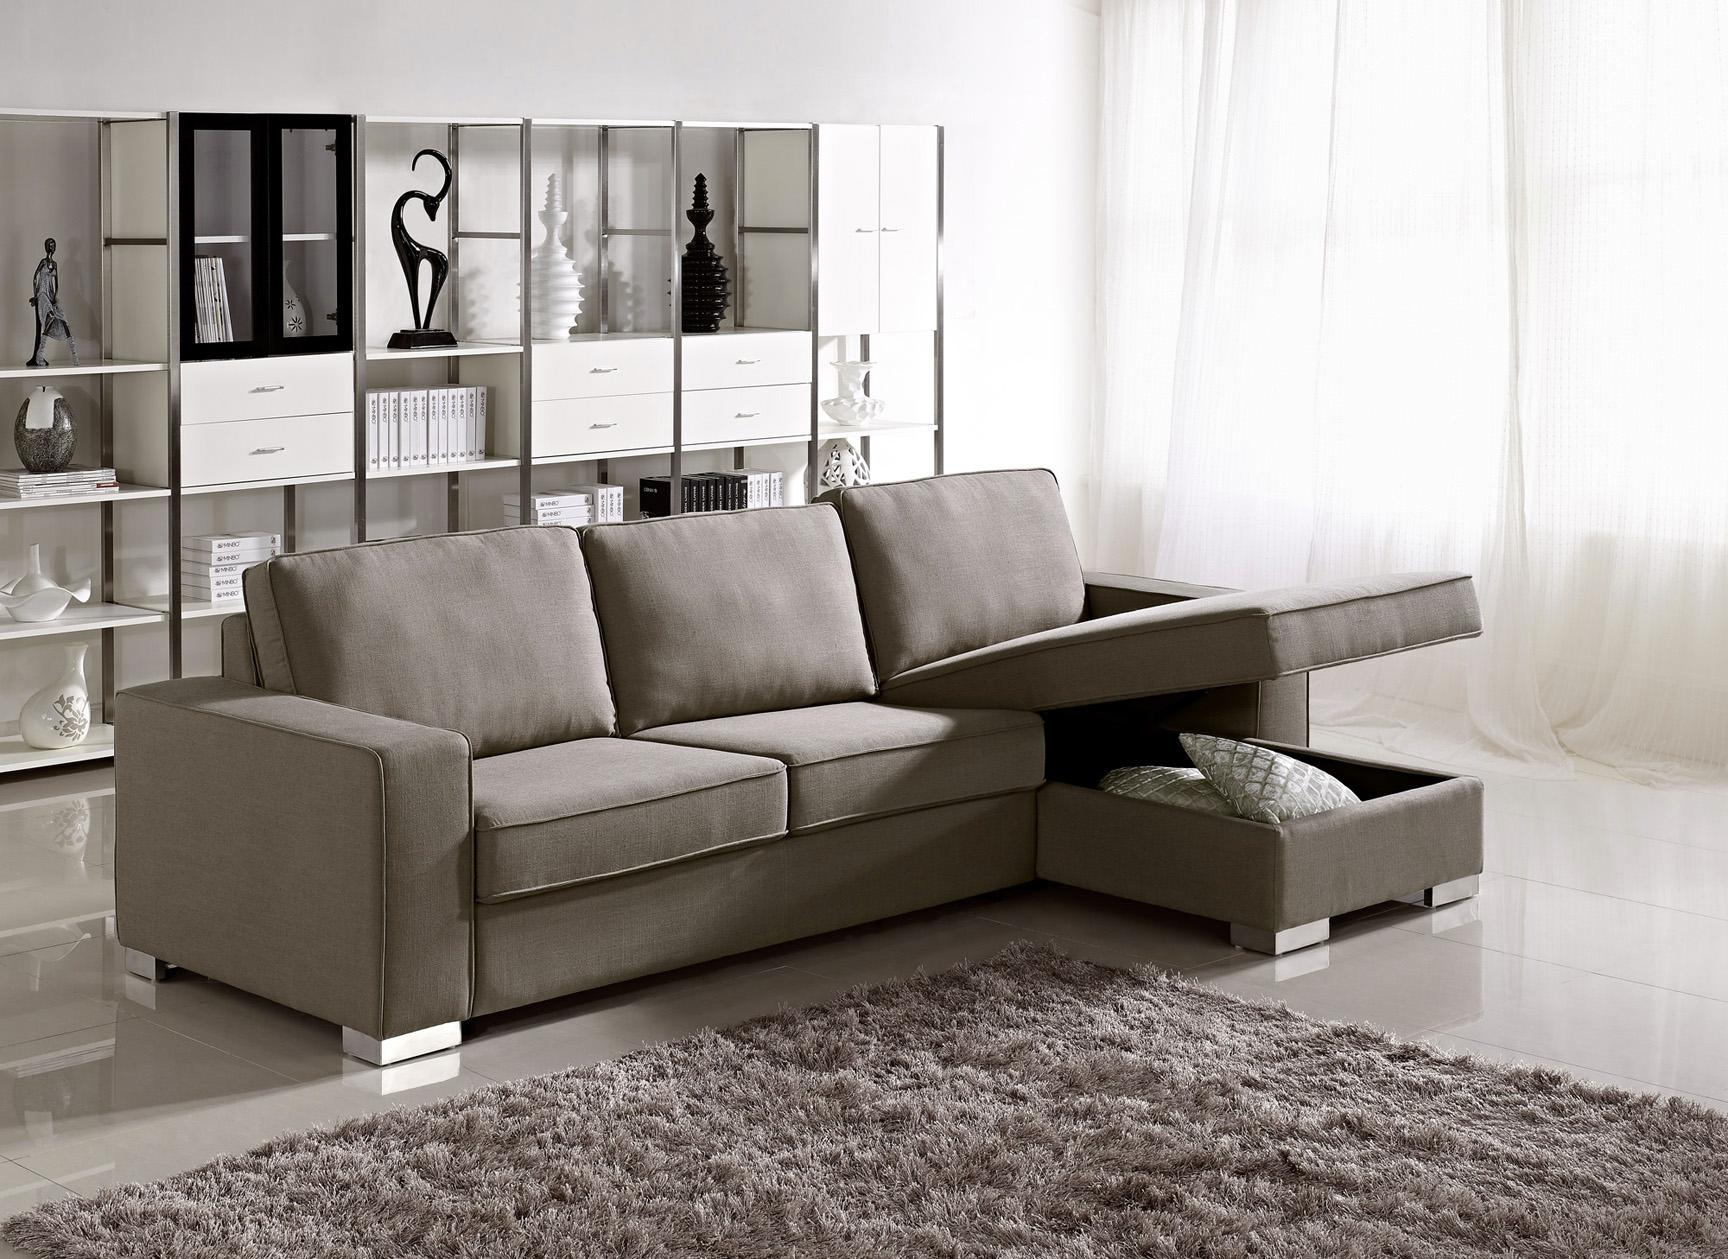 Sofas Center : Remarkable Sectional Sofas Image Design 46 With Regard To Apartment Size Sofas And Sectionals (Image 11 of 15)